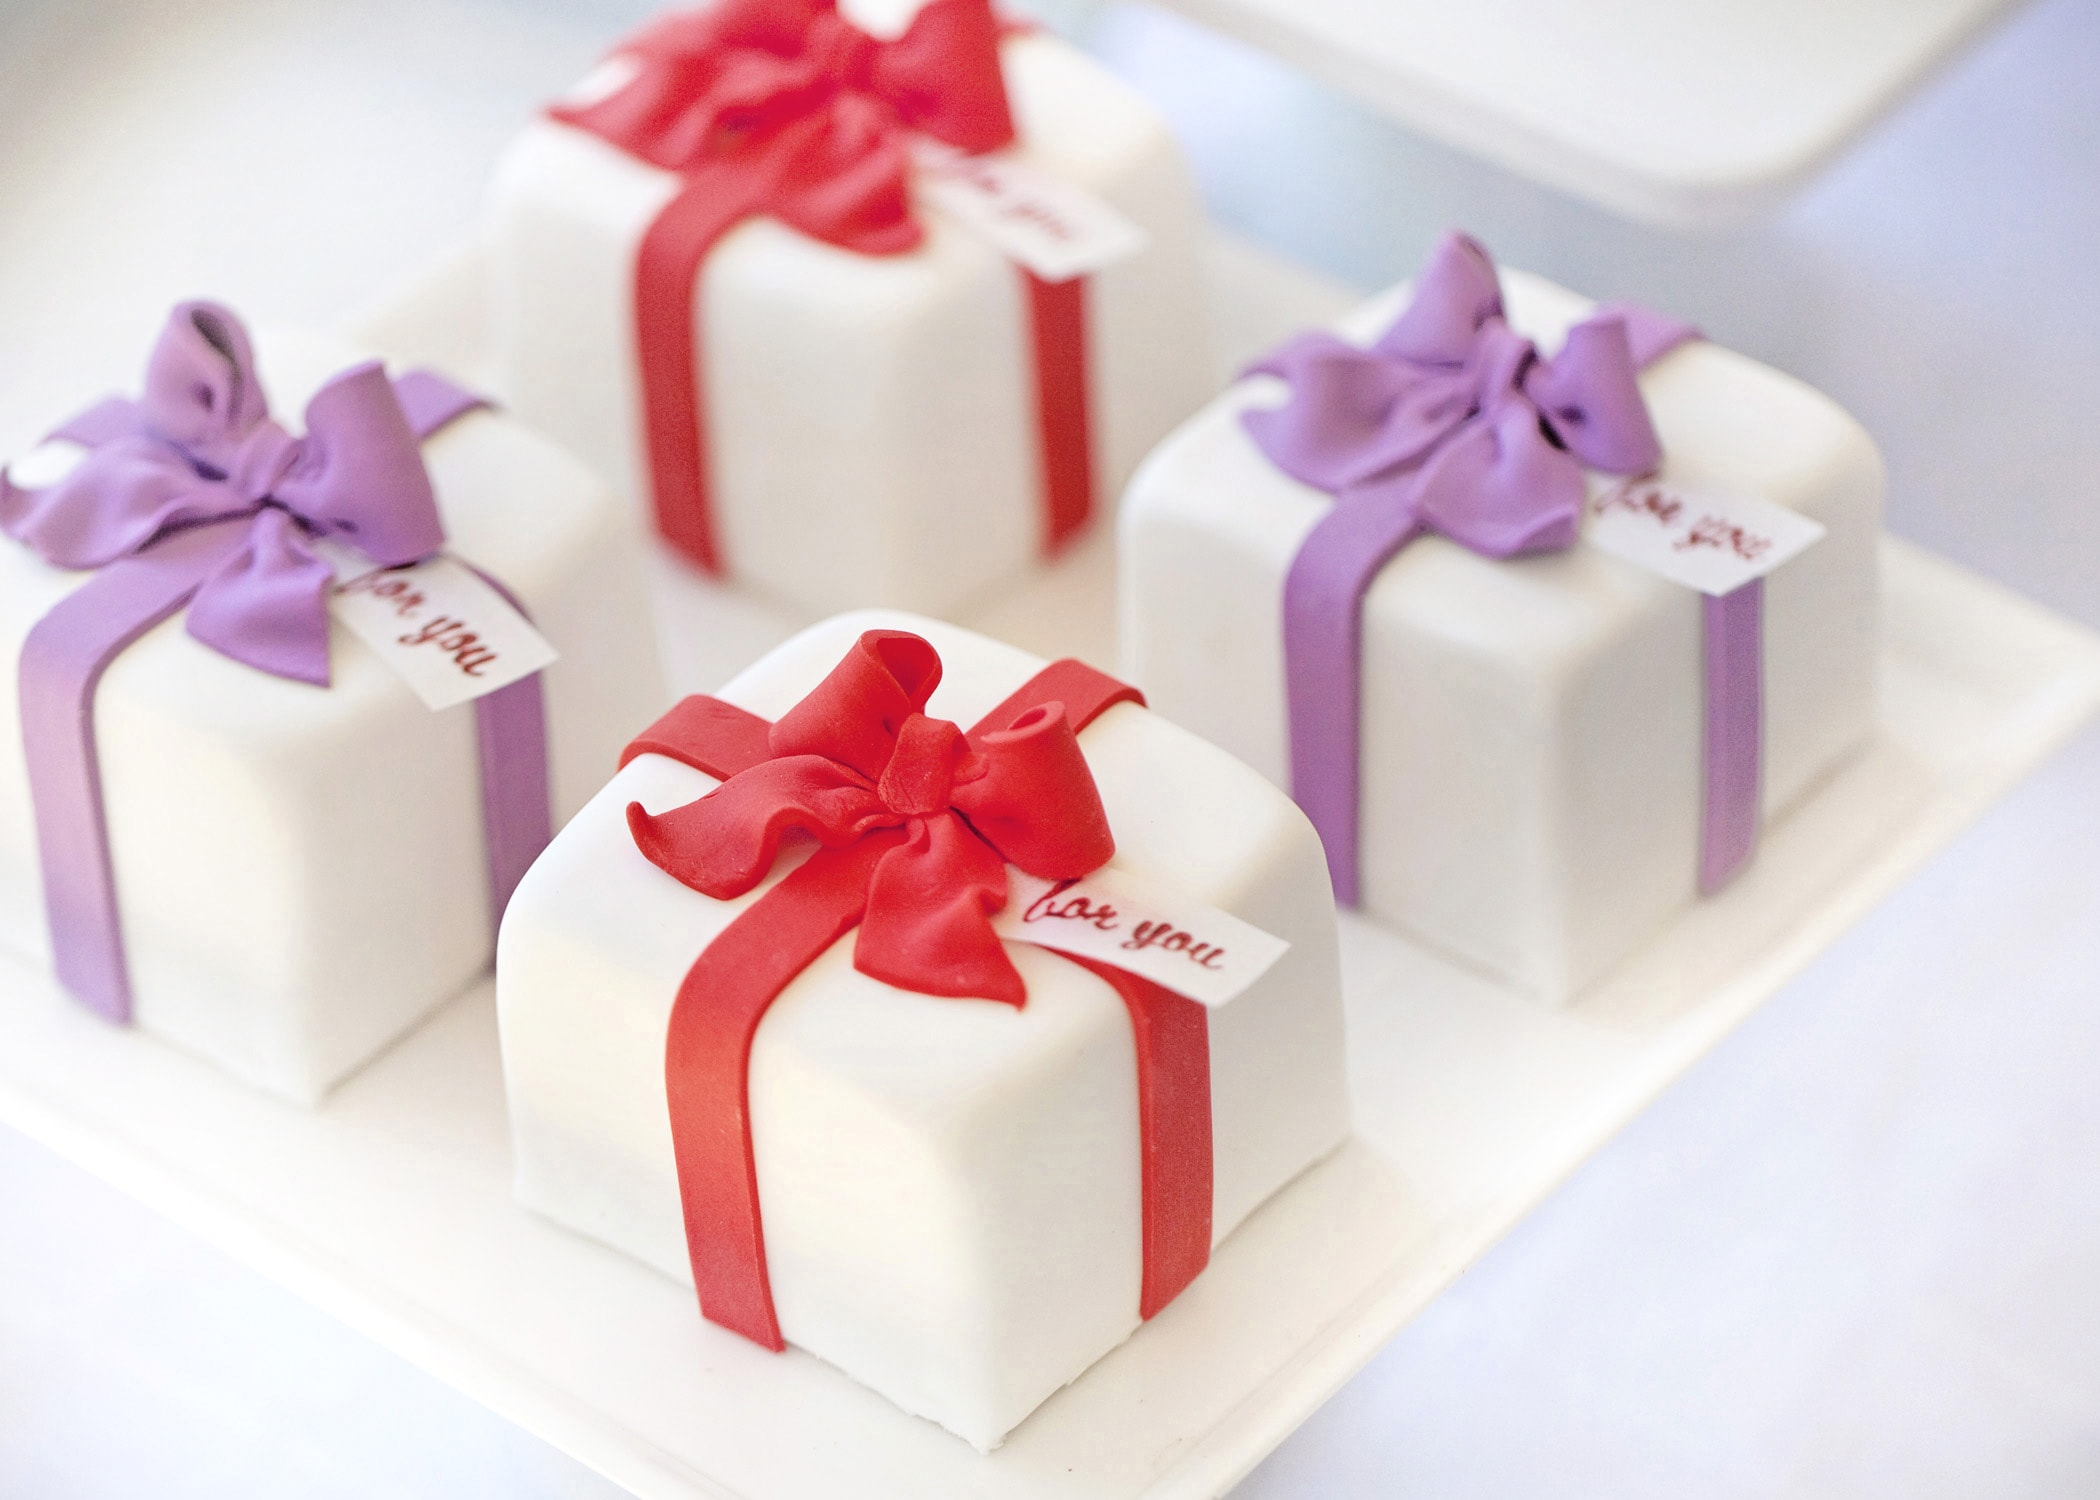 Cake Decorating Gift Experience : present-cake Best Friends For Frosting